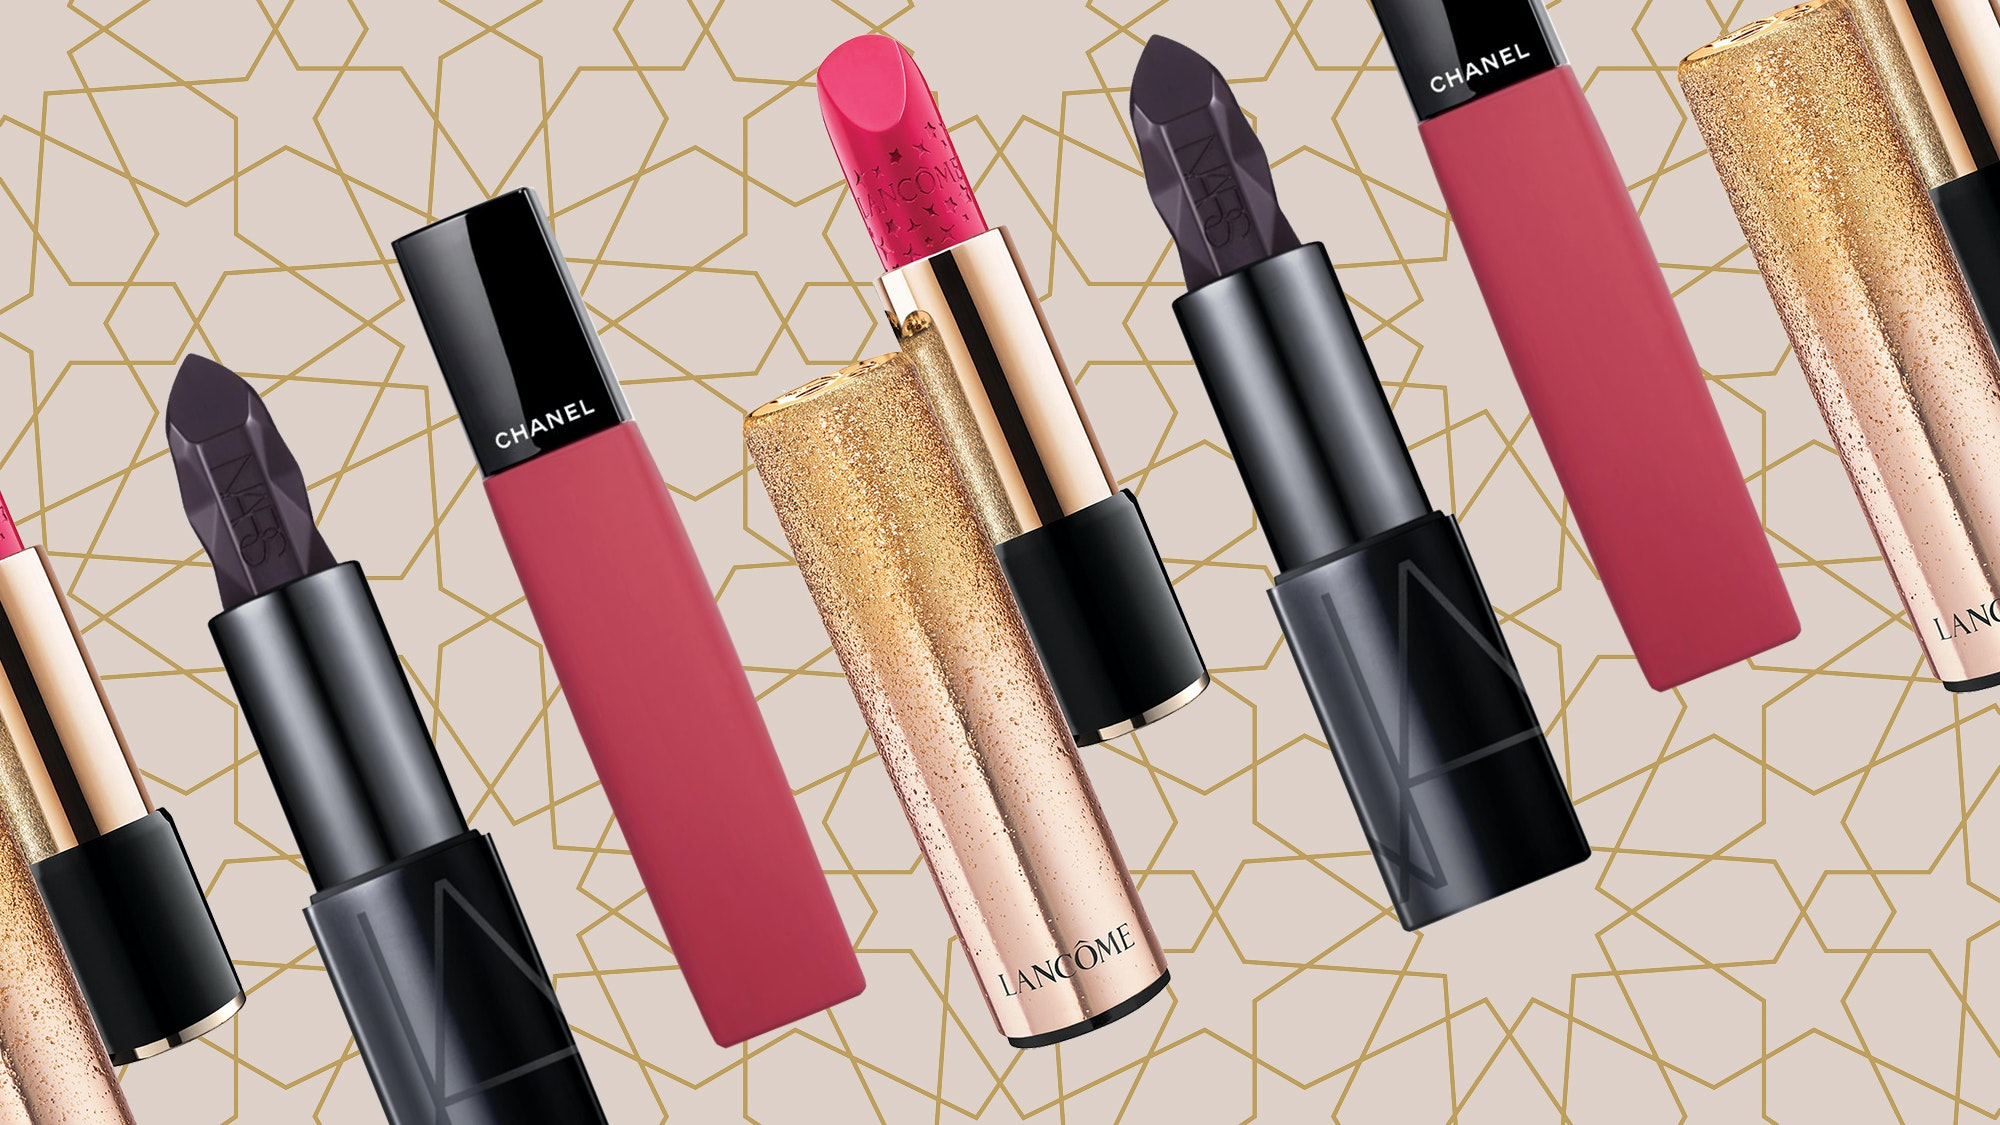 10 Editor-Approved Lip Colors You'll Swear by For Any Holiday Soirée